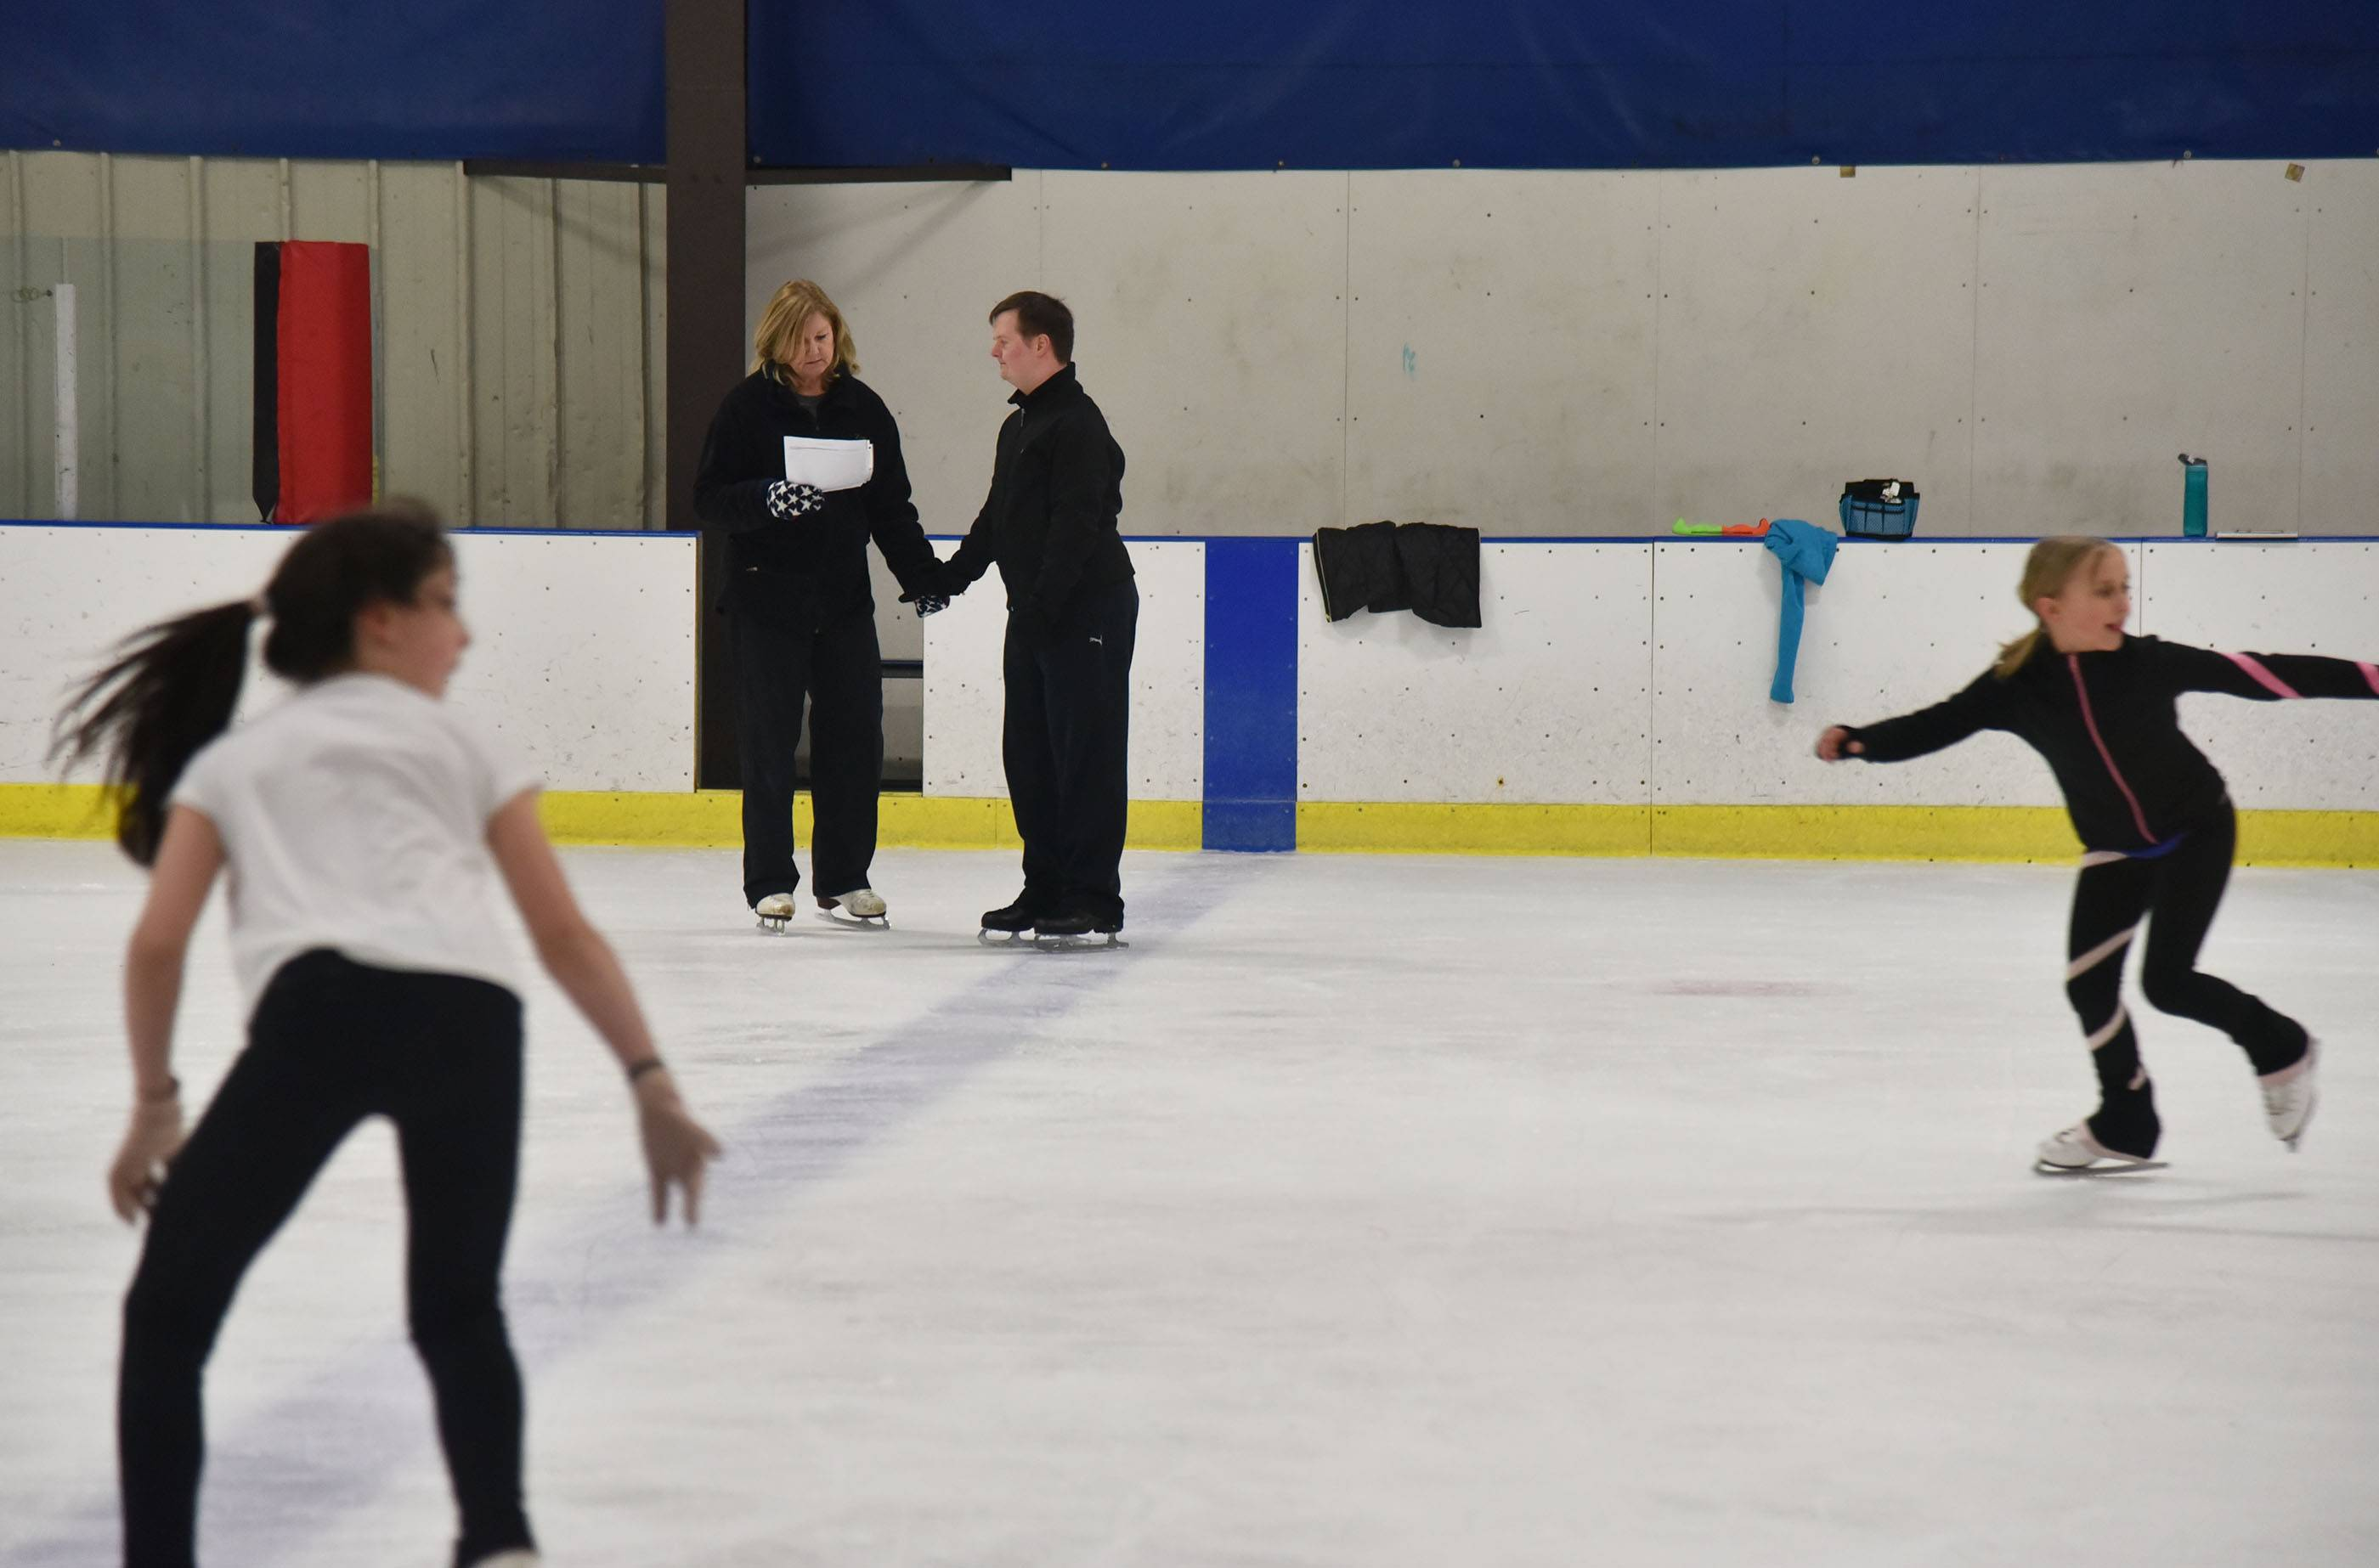 As others work on their routines, Coach Zane Shropshire talks with skater Ben Collins at the Crystal Ice House in Crystal Lake.